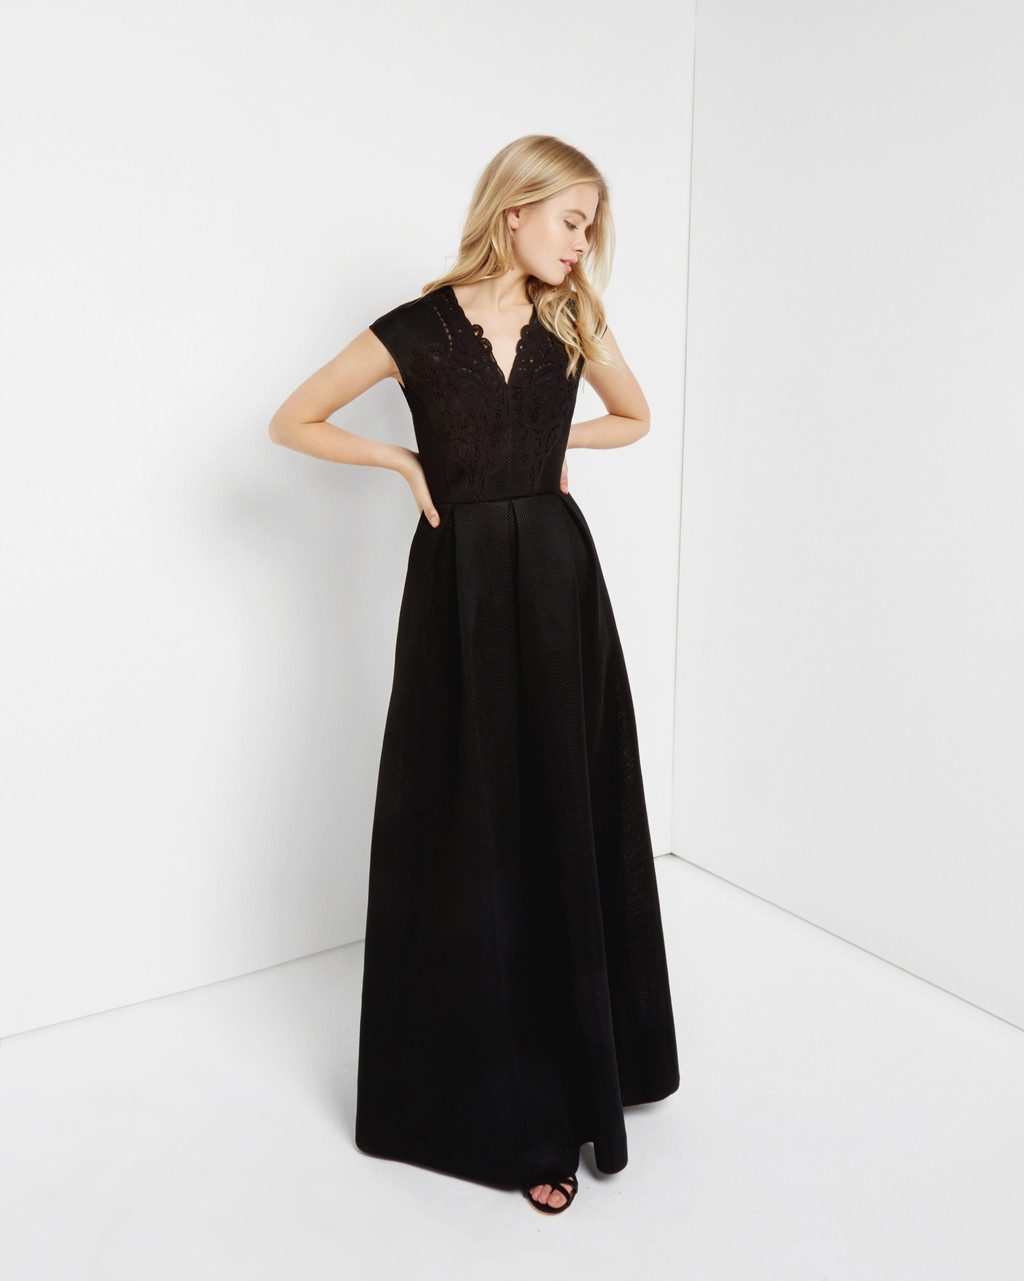 Lace Mesh Maxi Dress Black - neckline: v-neck; sleeve style: capped; pattern: plain; style: maxi dress; predominant colour: black; occasions: evening; length: floor length; fit: fitted at waist & bust; fibres: polyester/polyamide - 100%; sleeve length: short sleeve; texture group: sheer fabrics/chiffon/organza etc.; pattern type: fabric; season: a/w 2016; wardrobe: event